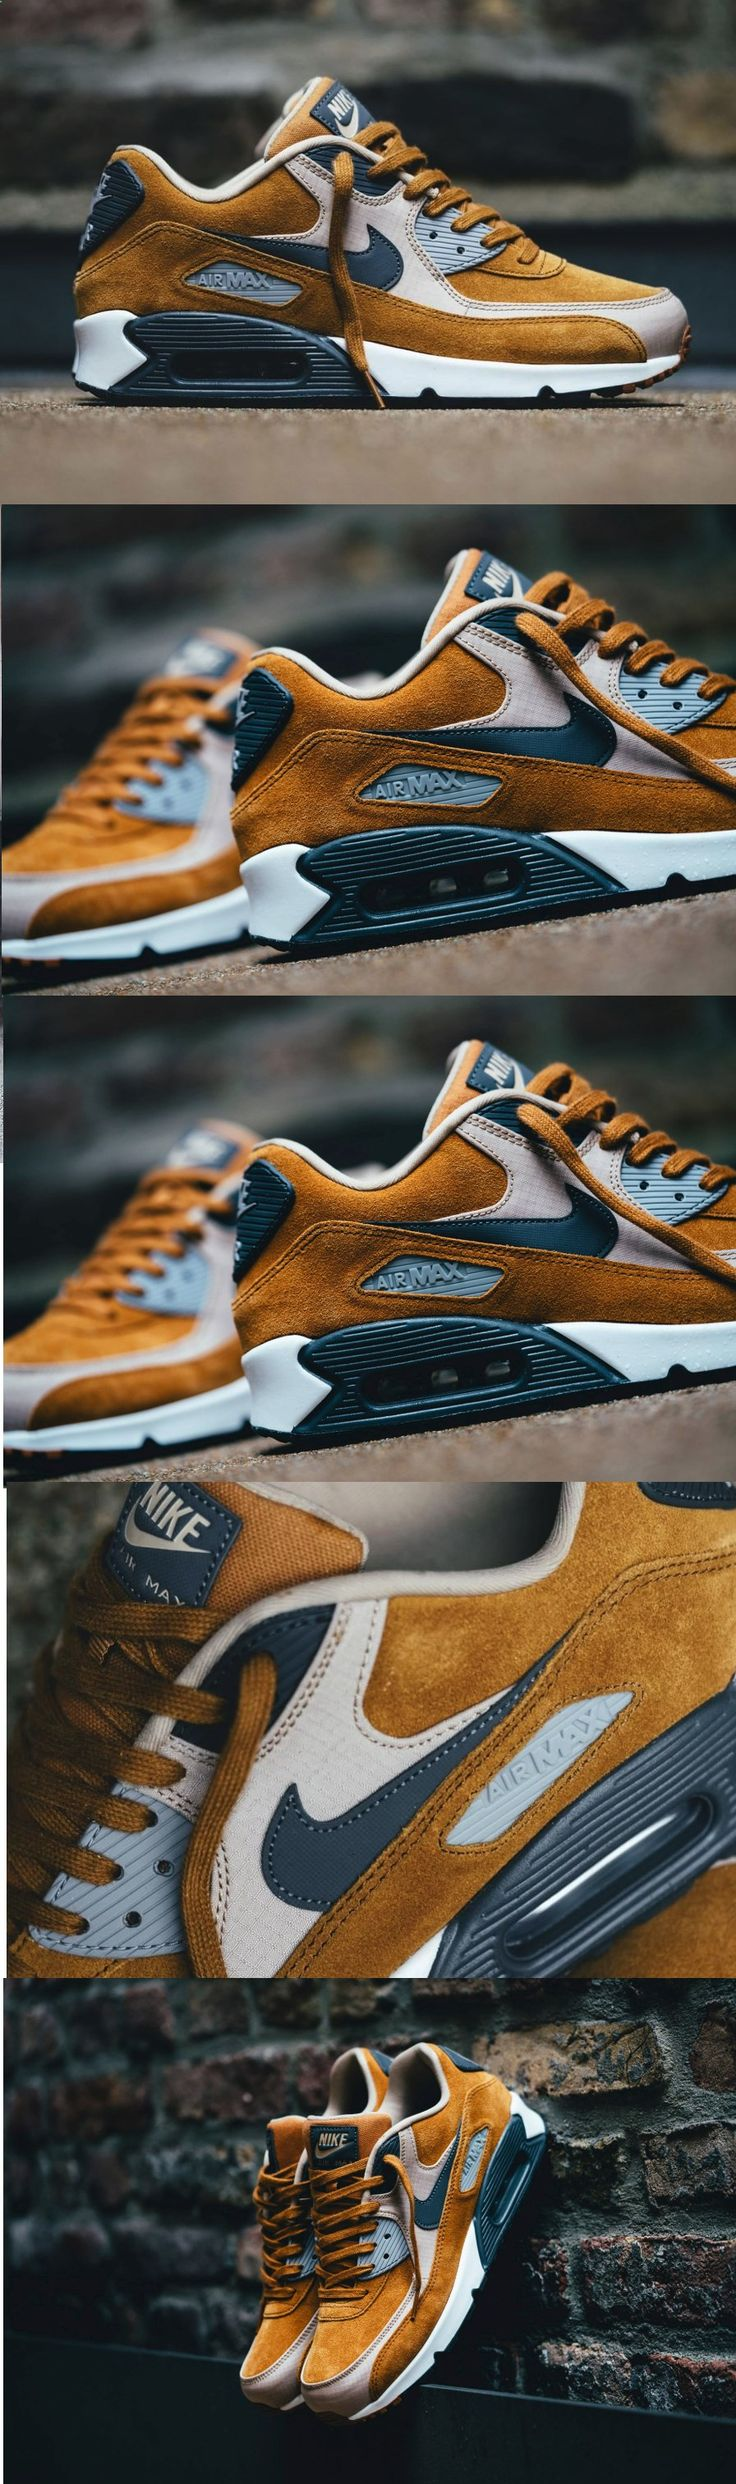 Nike Air Max 90 PRM Desert Ochre #Sneakers #Zapatillas These are mine!!! tmblr.co/...